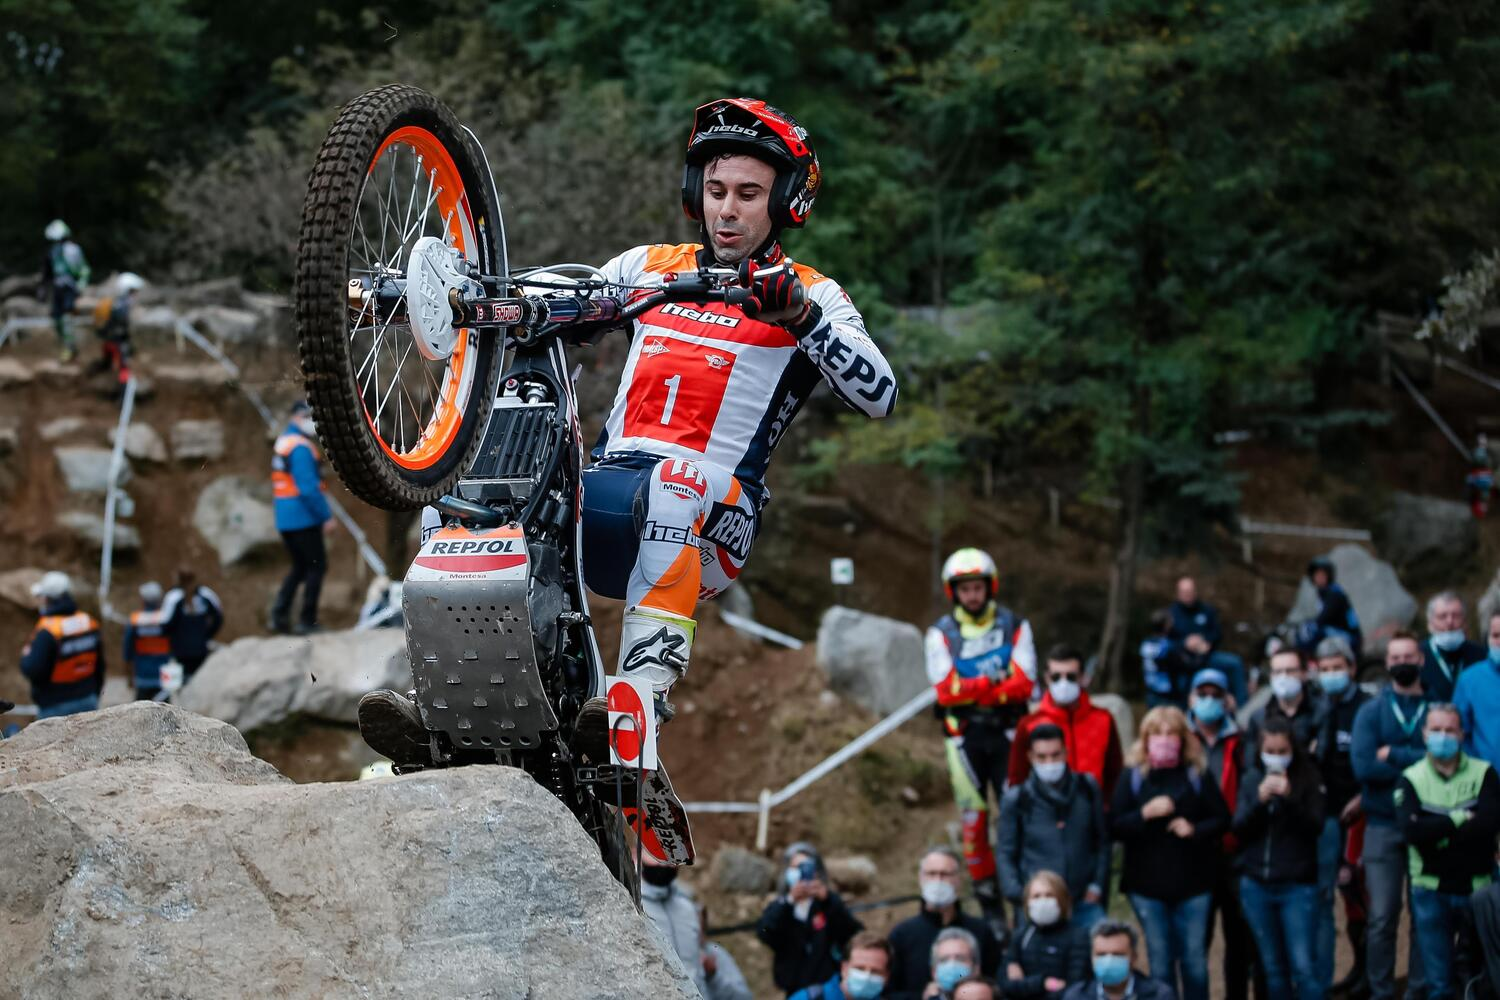 Grande Trial in casa del Moto Club Lazzate